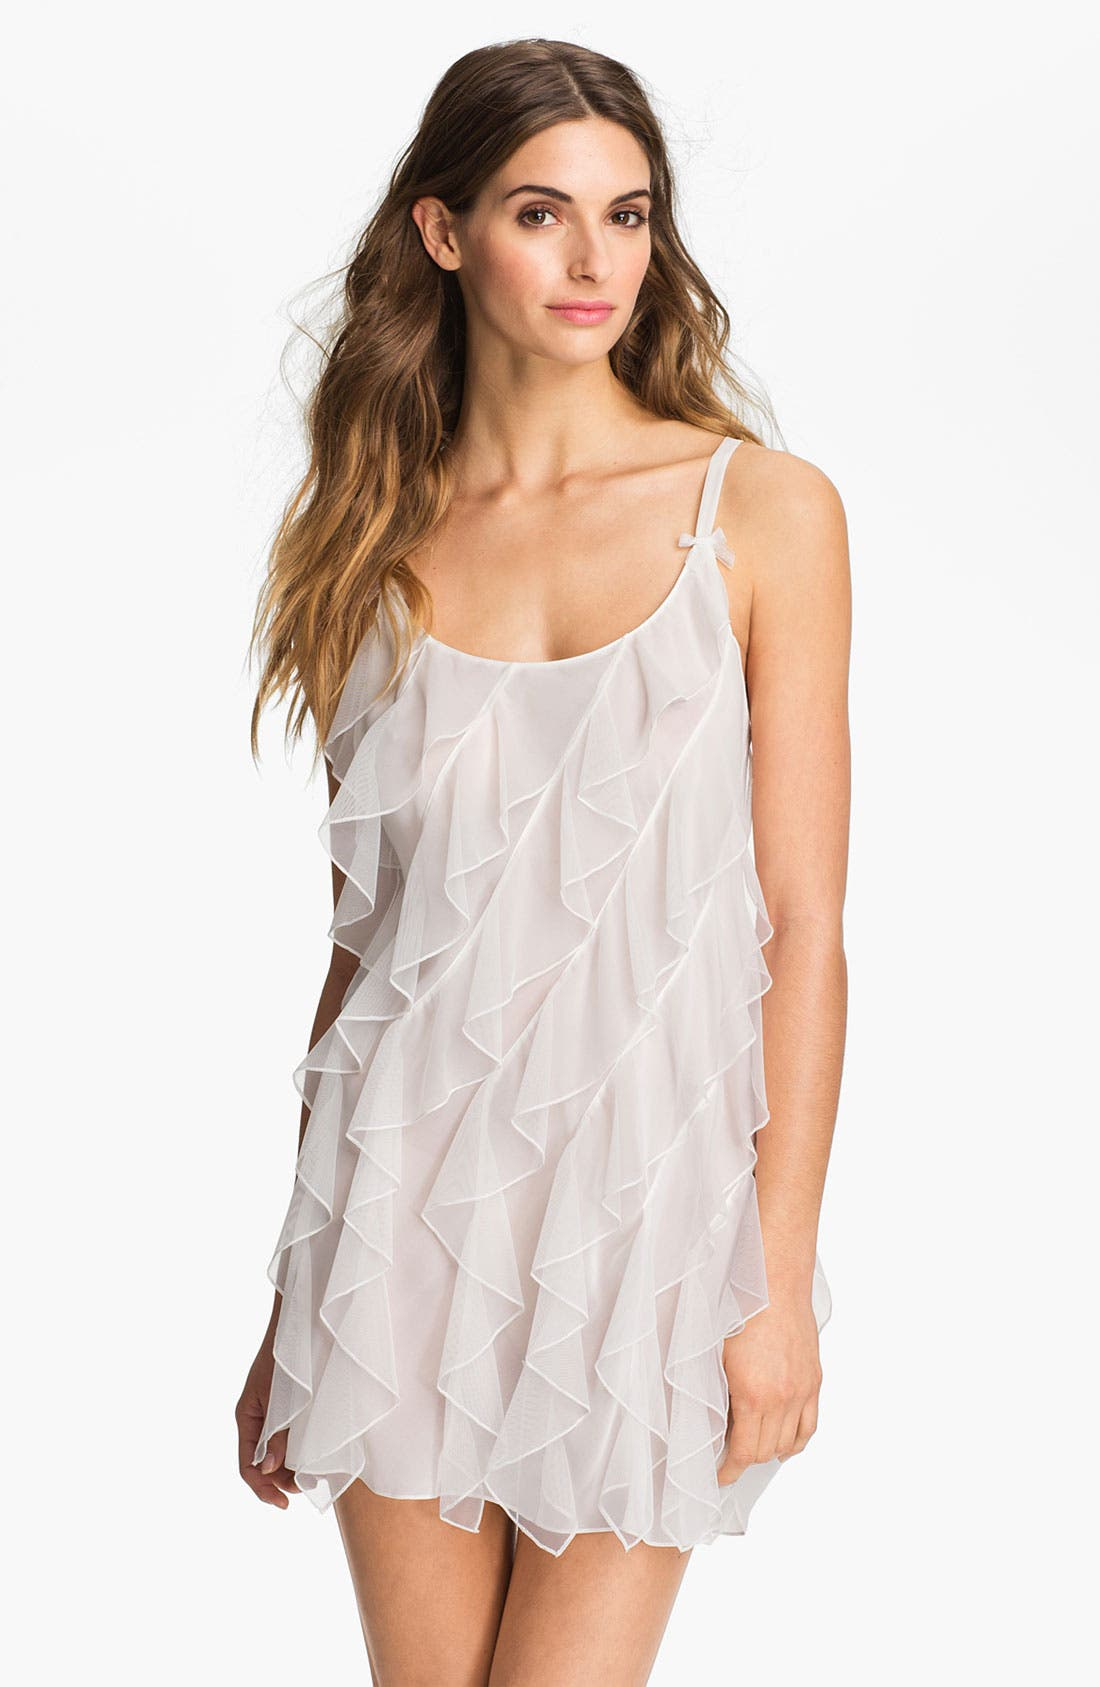 Alternate Image 1 Selected - Oscar de la Renta Sleepwear 'Ruffled Romance' Chemise